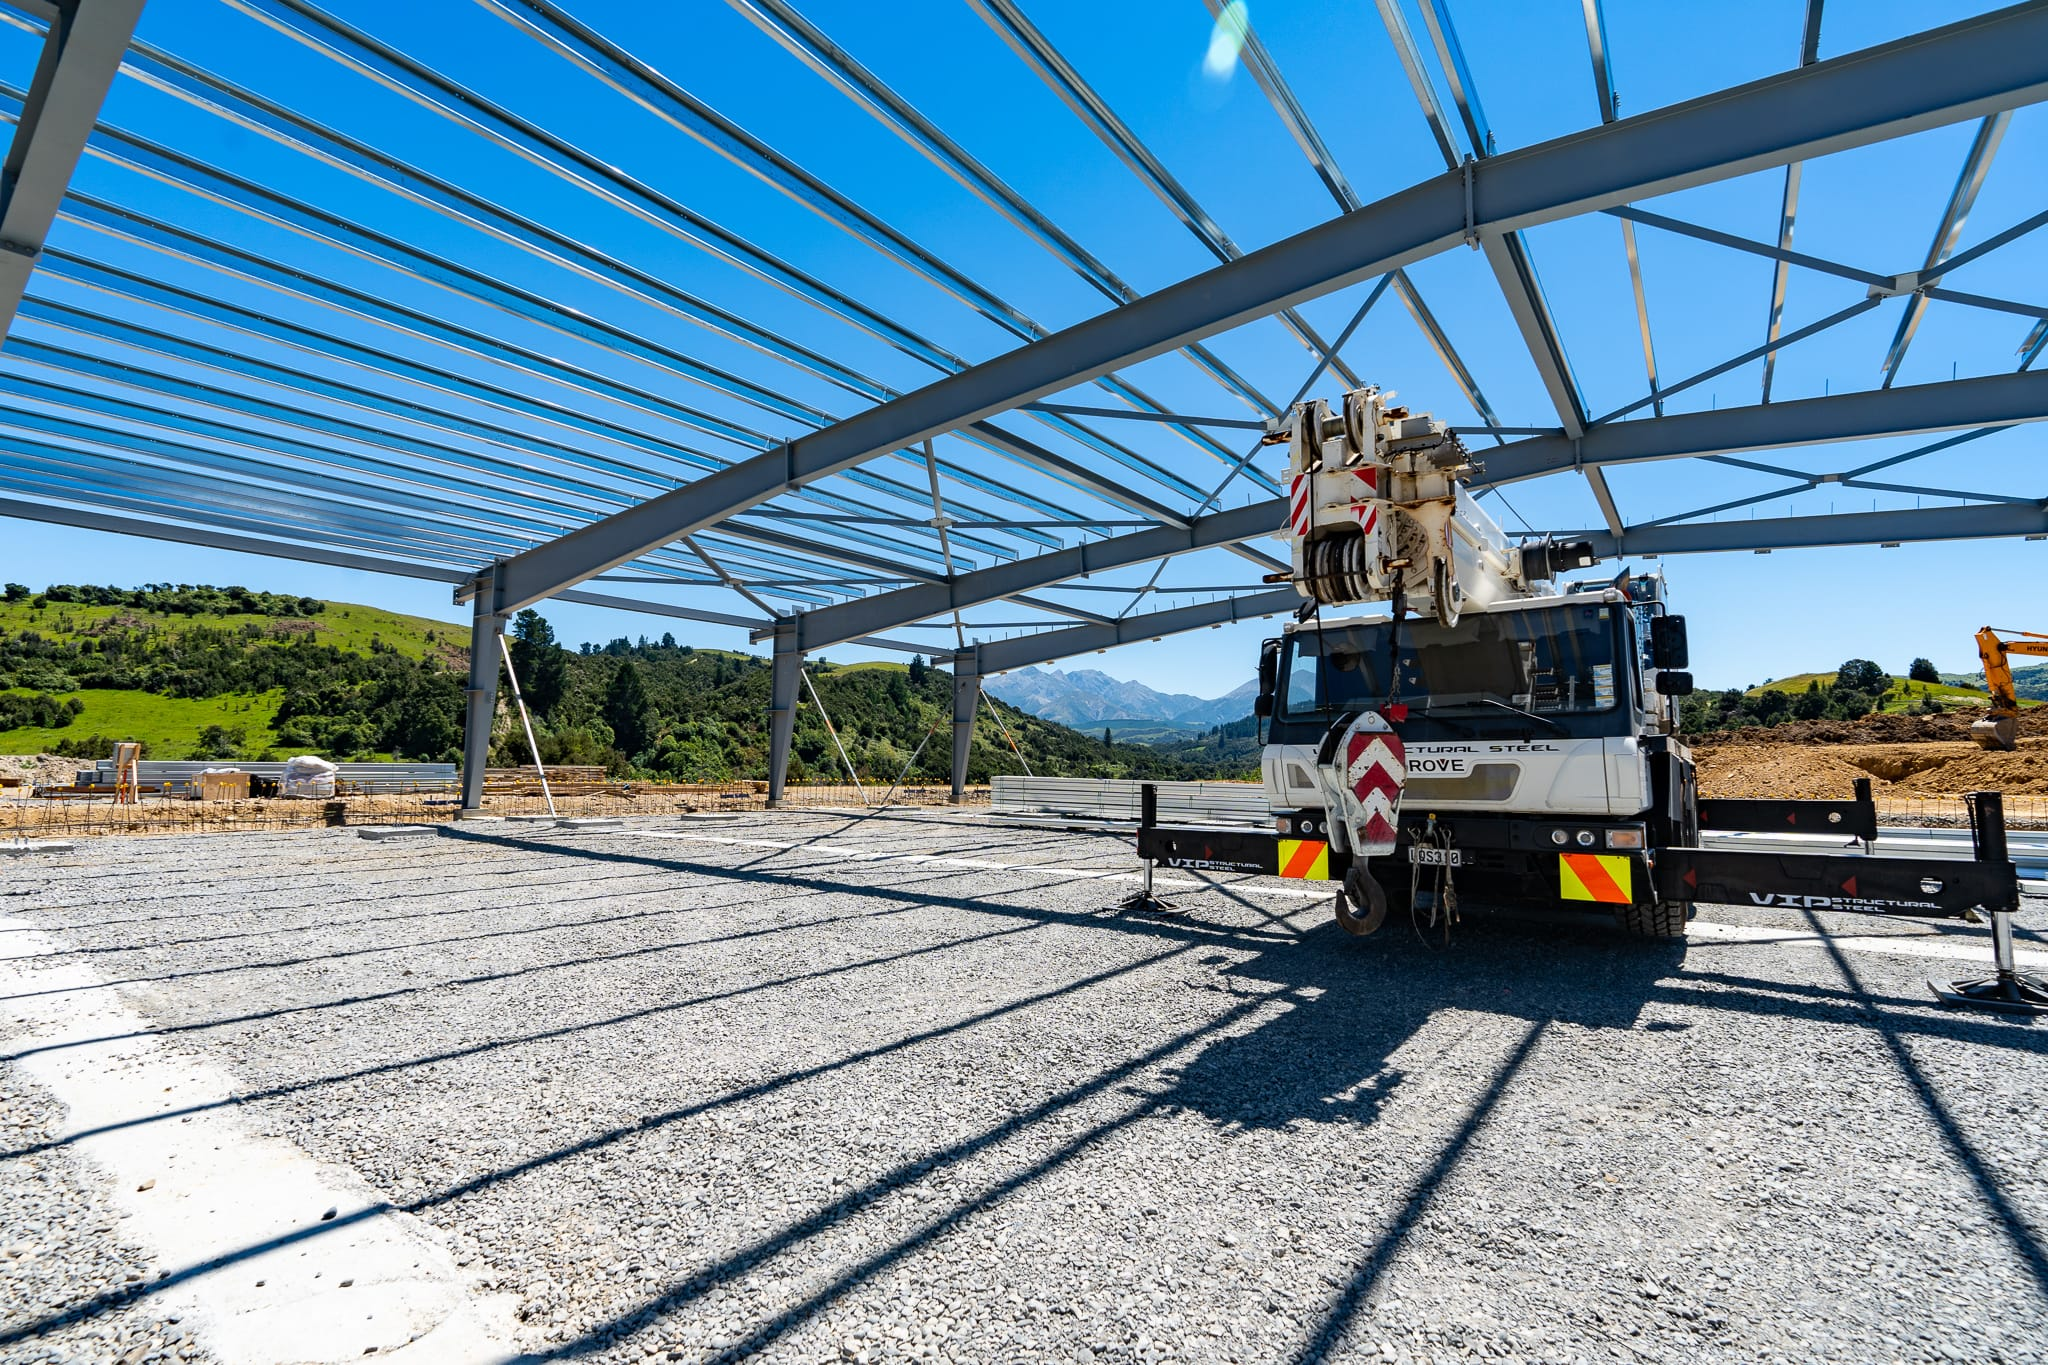 vip_steel_christchurch_north_canterbury_rodin_cars_superstructure_9